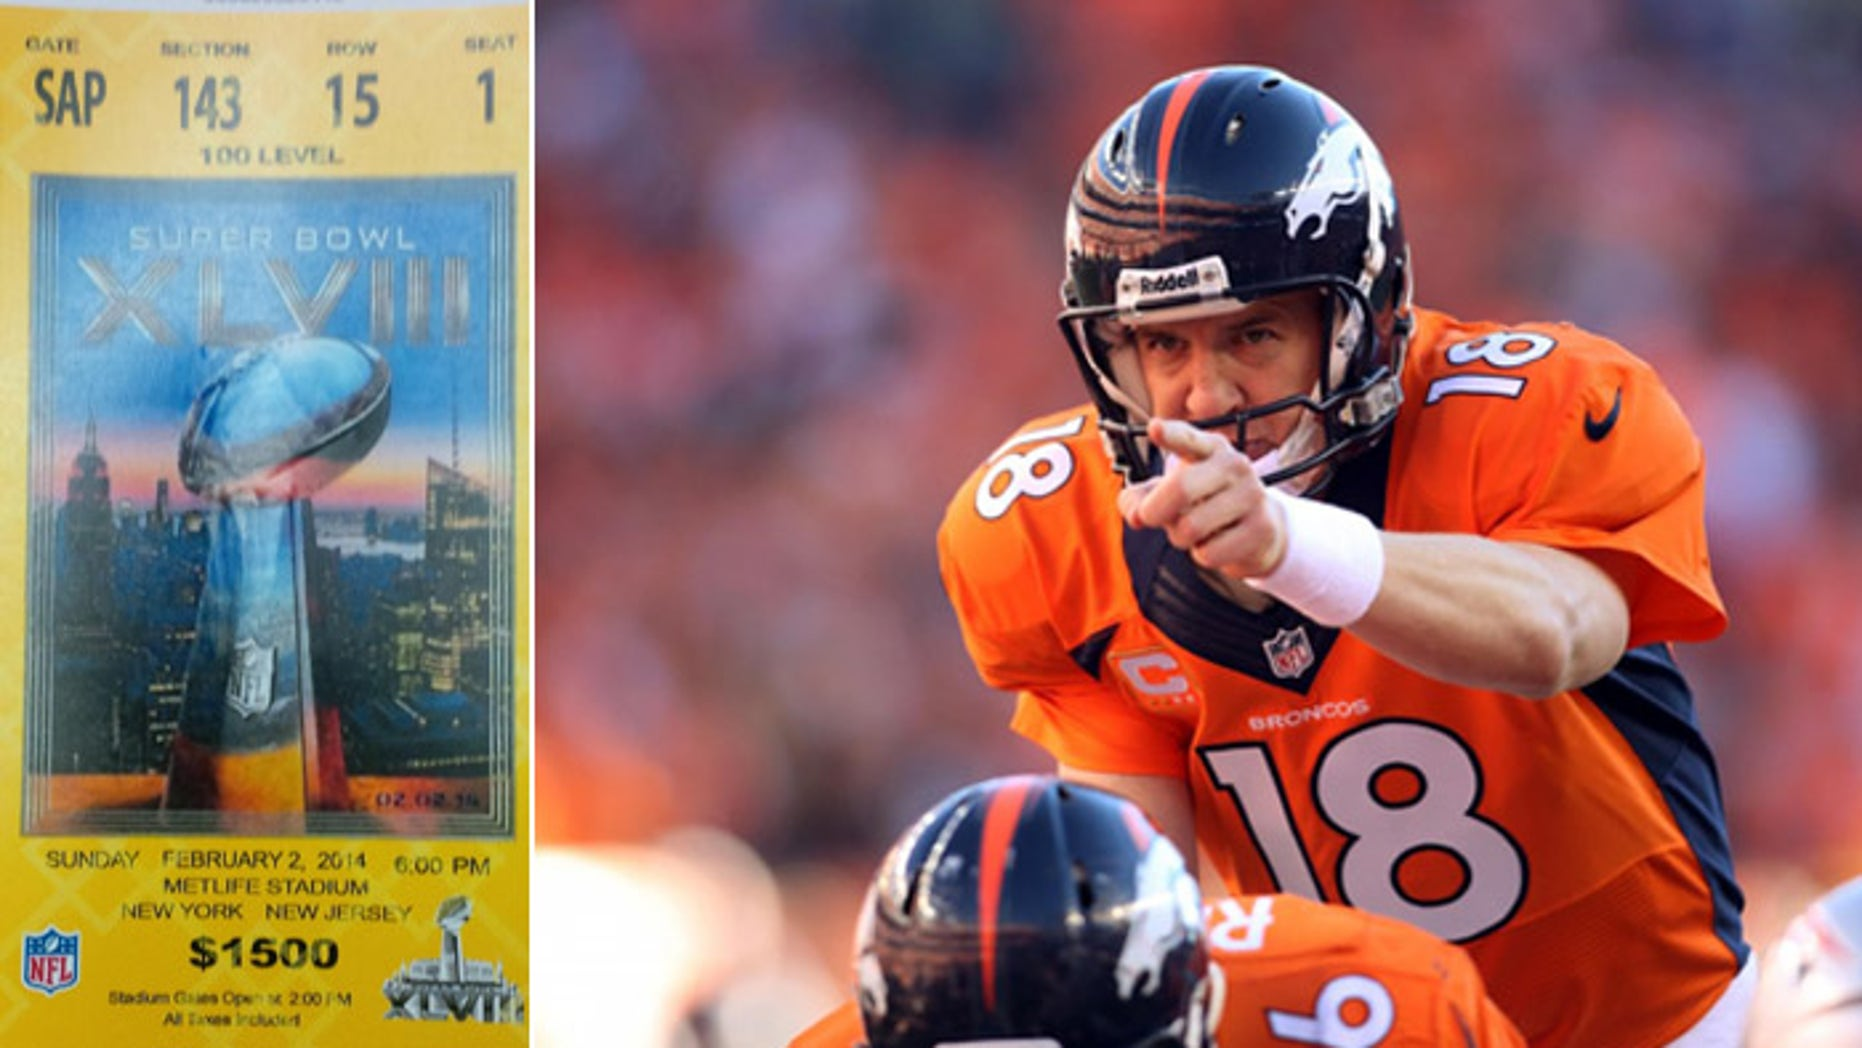 The ticket is fake, but its bar code is real enough to get a fan inside MetLife Stadium to see Peyton Manning lead the Broncos against the Seahawks in the Super Bowl. (AP)